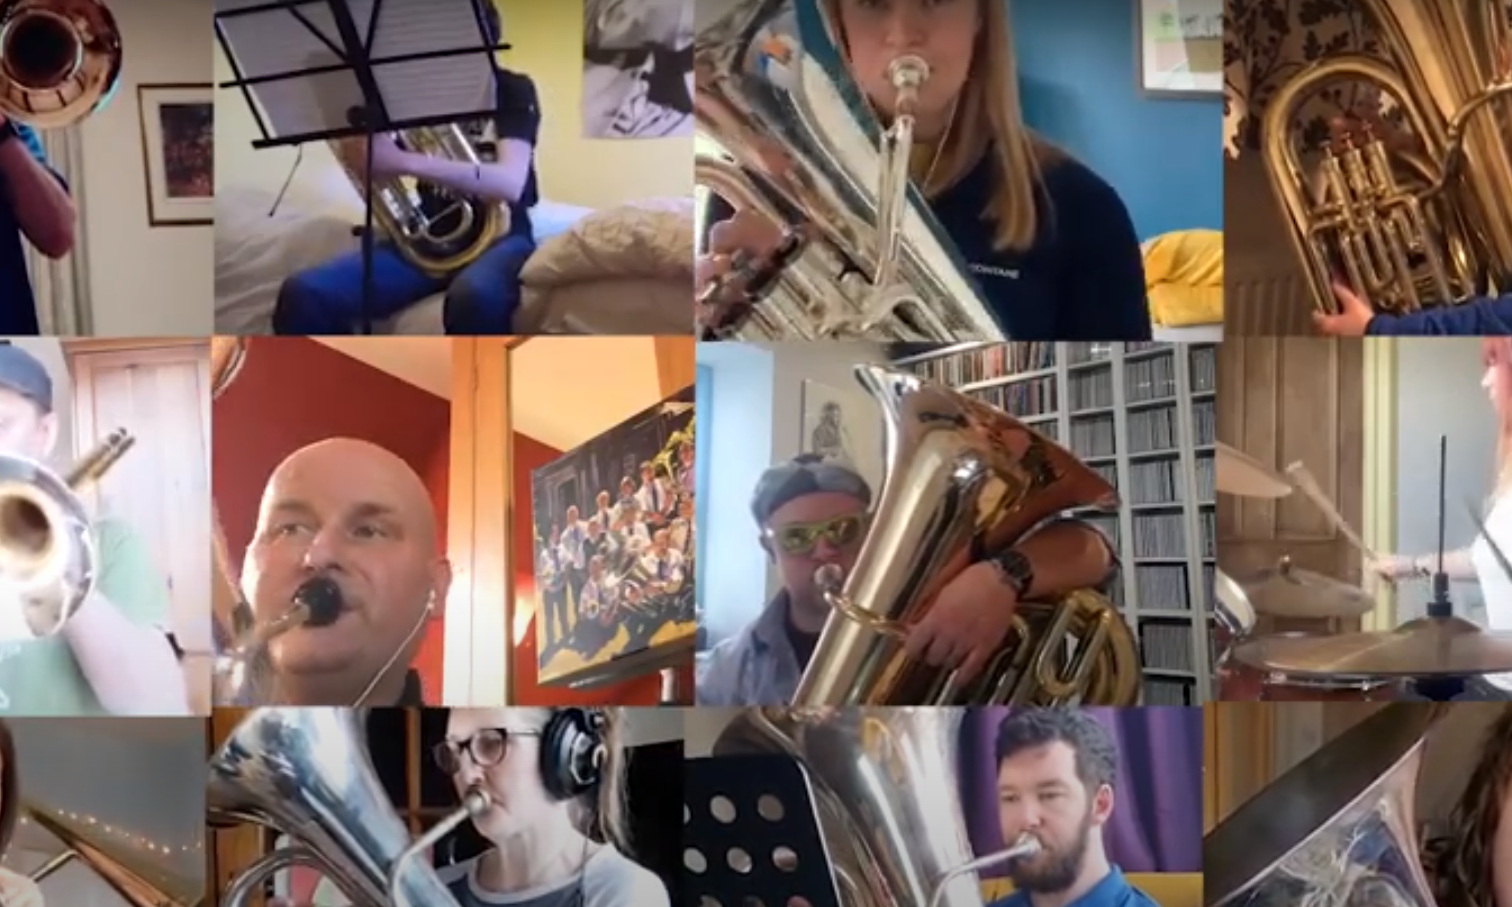 Perthshire Brass members treated fans to a favourite to beat the lockdown blues.